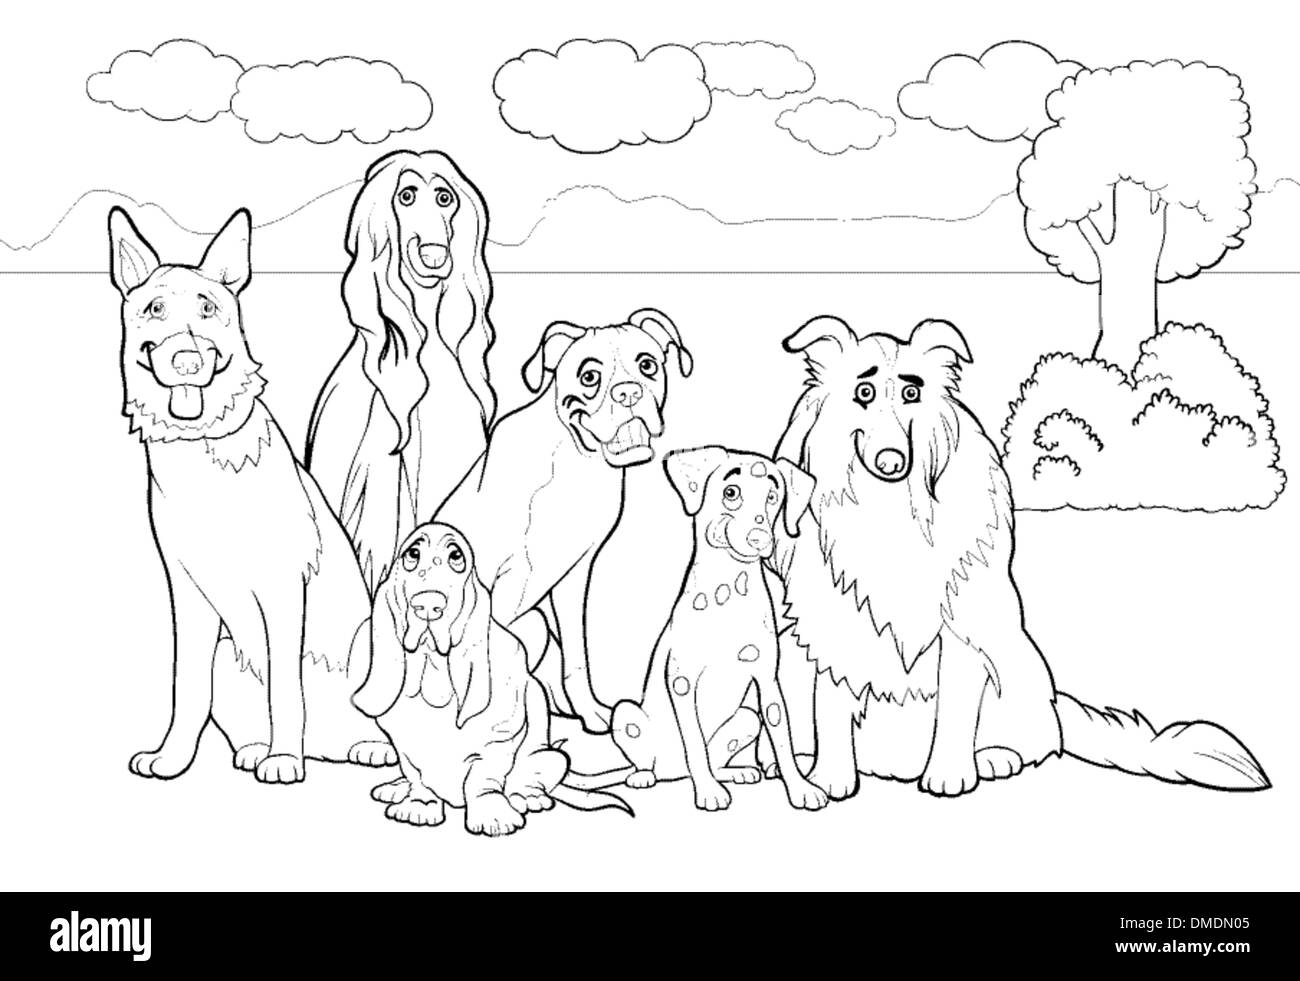 purebred dogs cartoon for coloring book - Stock Vector